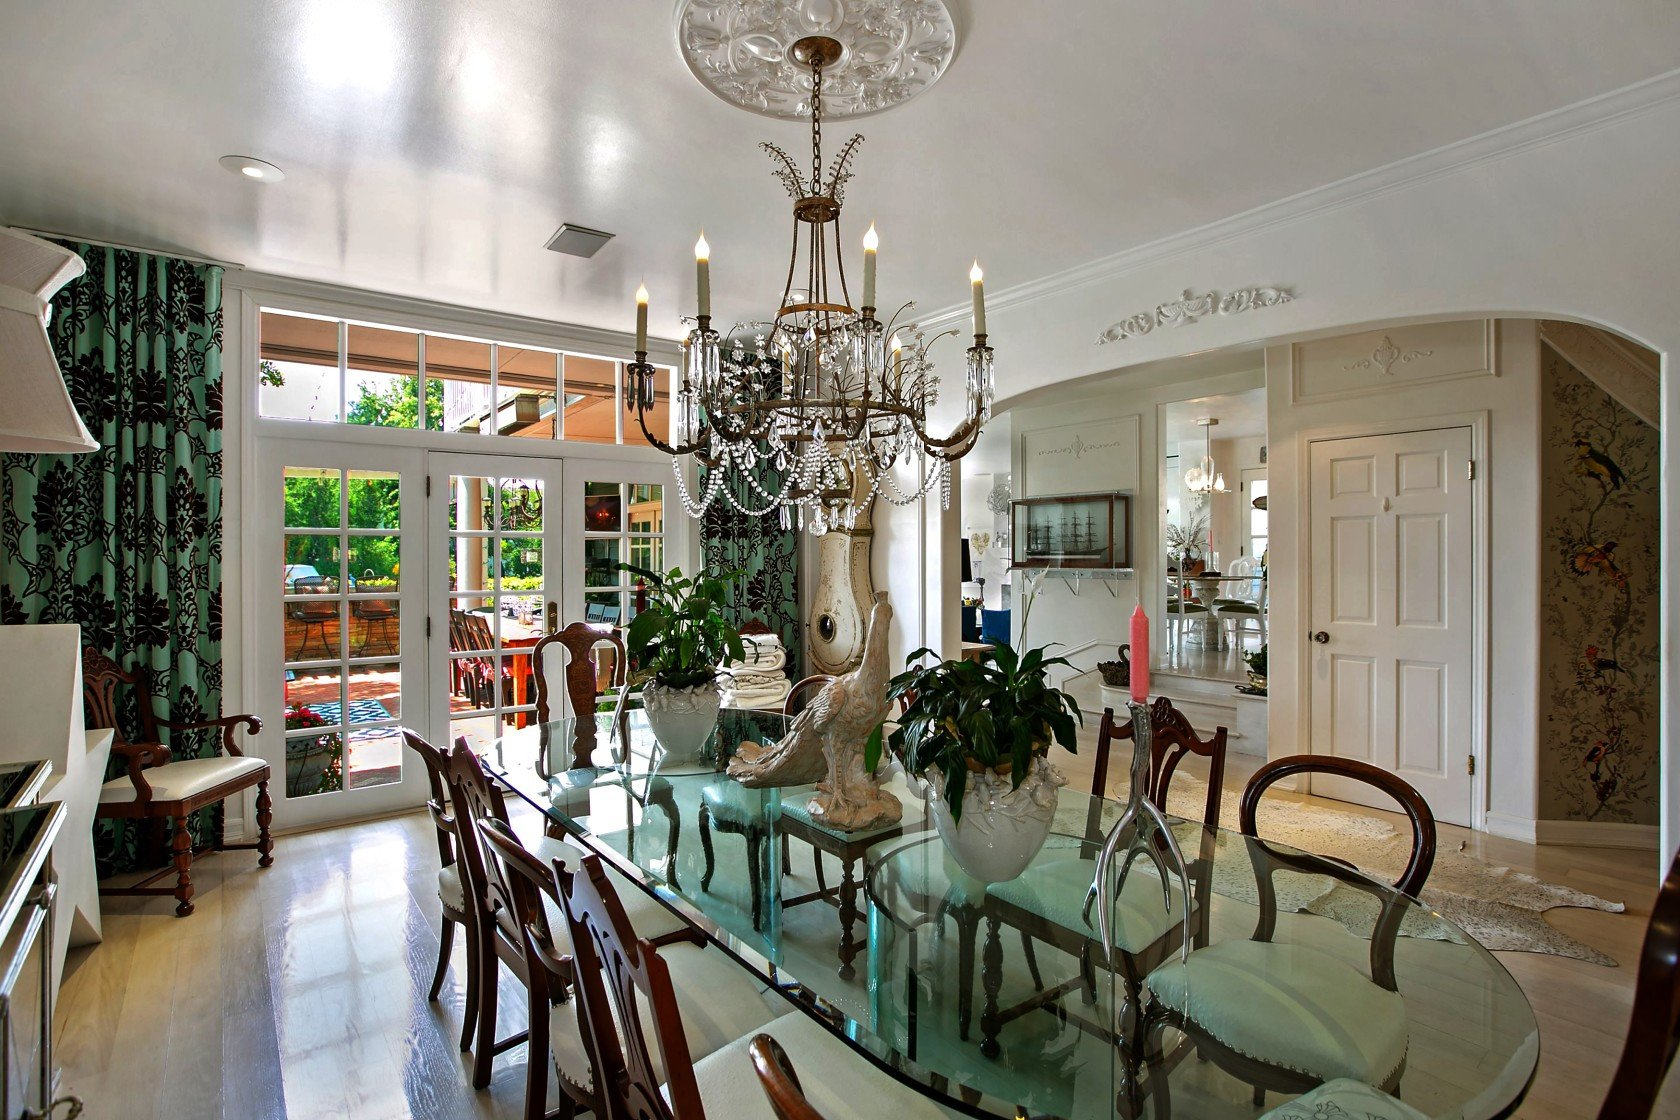 Fake Chandelier for Bedroom Best Of Hot Property Kirsten Dunst Sells Her toluca Lake Home to